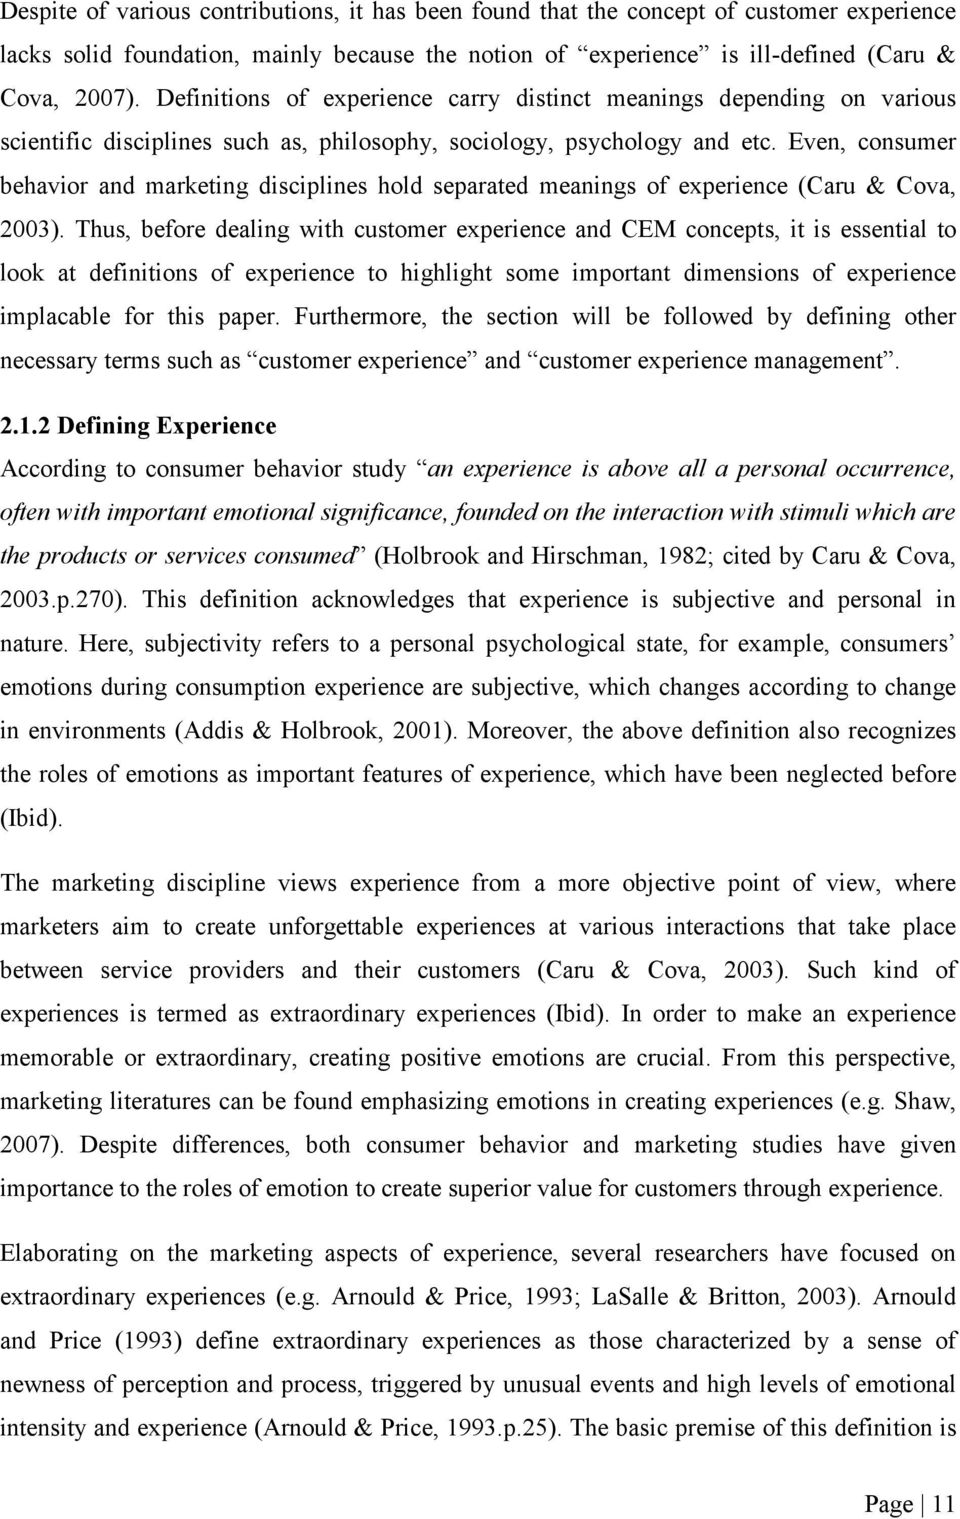 Even, consumer behavior and marketing disciplines hold separated meanings of experience (Caru & Cova, 2003).